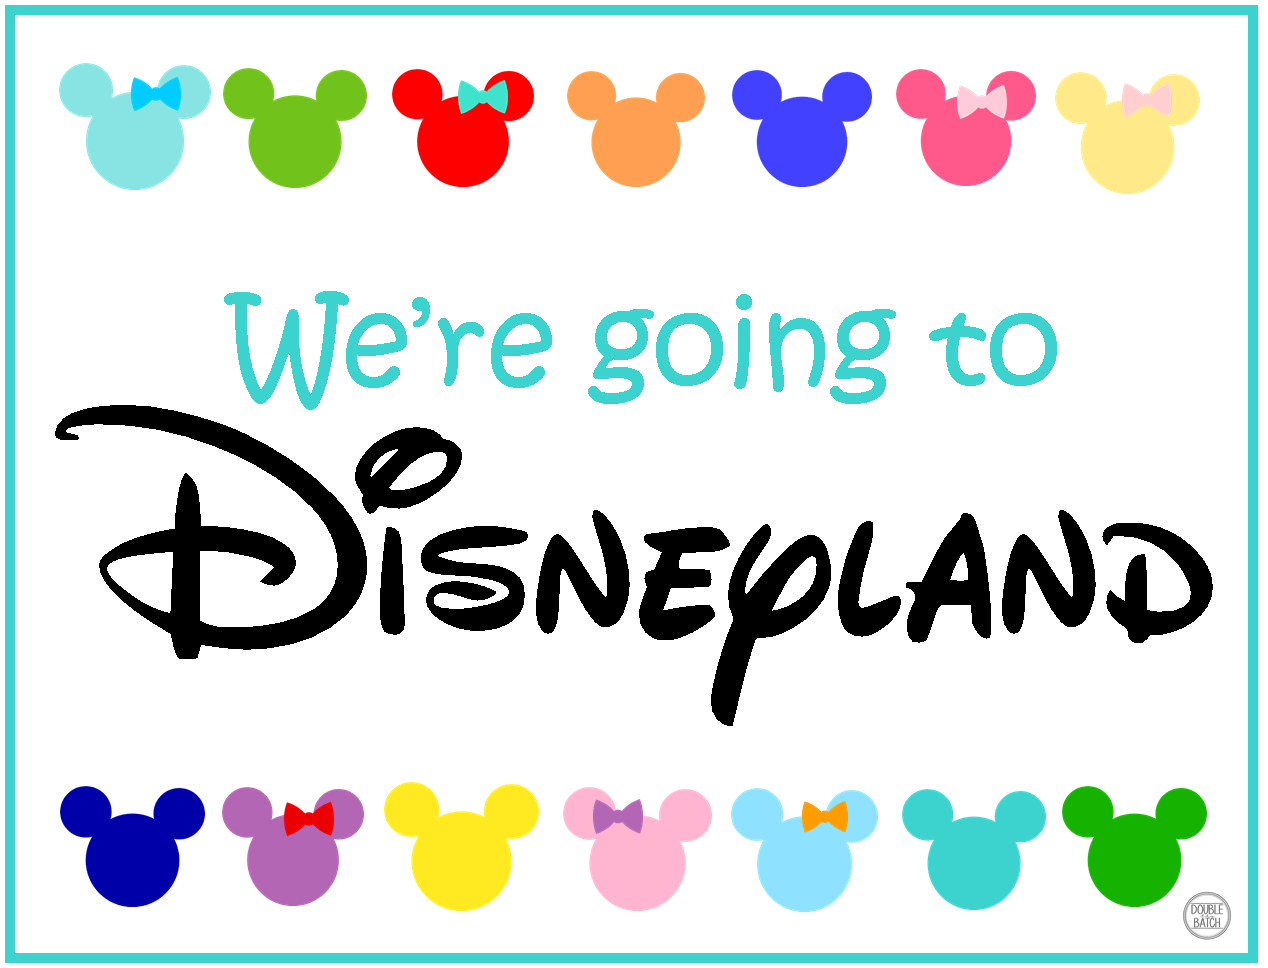 graphic about You're Going to Disneyland Printable called DISNEY THEMED SCAVENGER HUNT- Absolutely free Clues Presenting Your